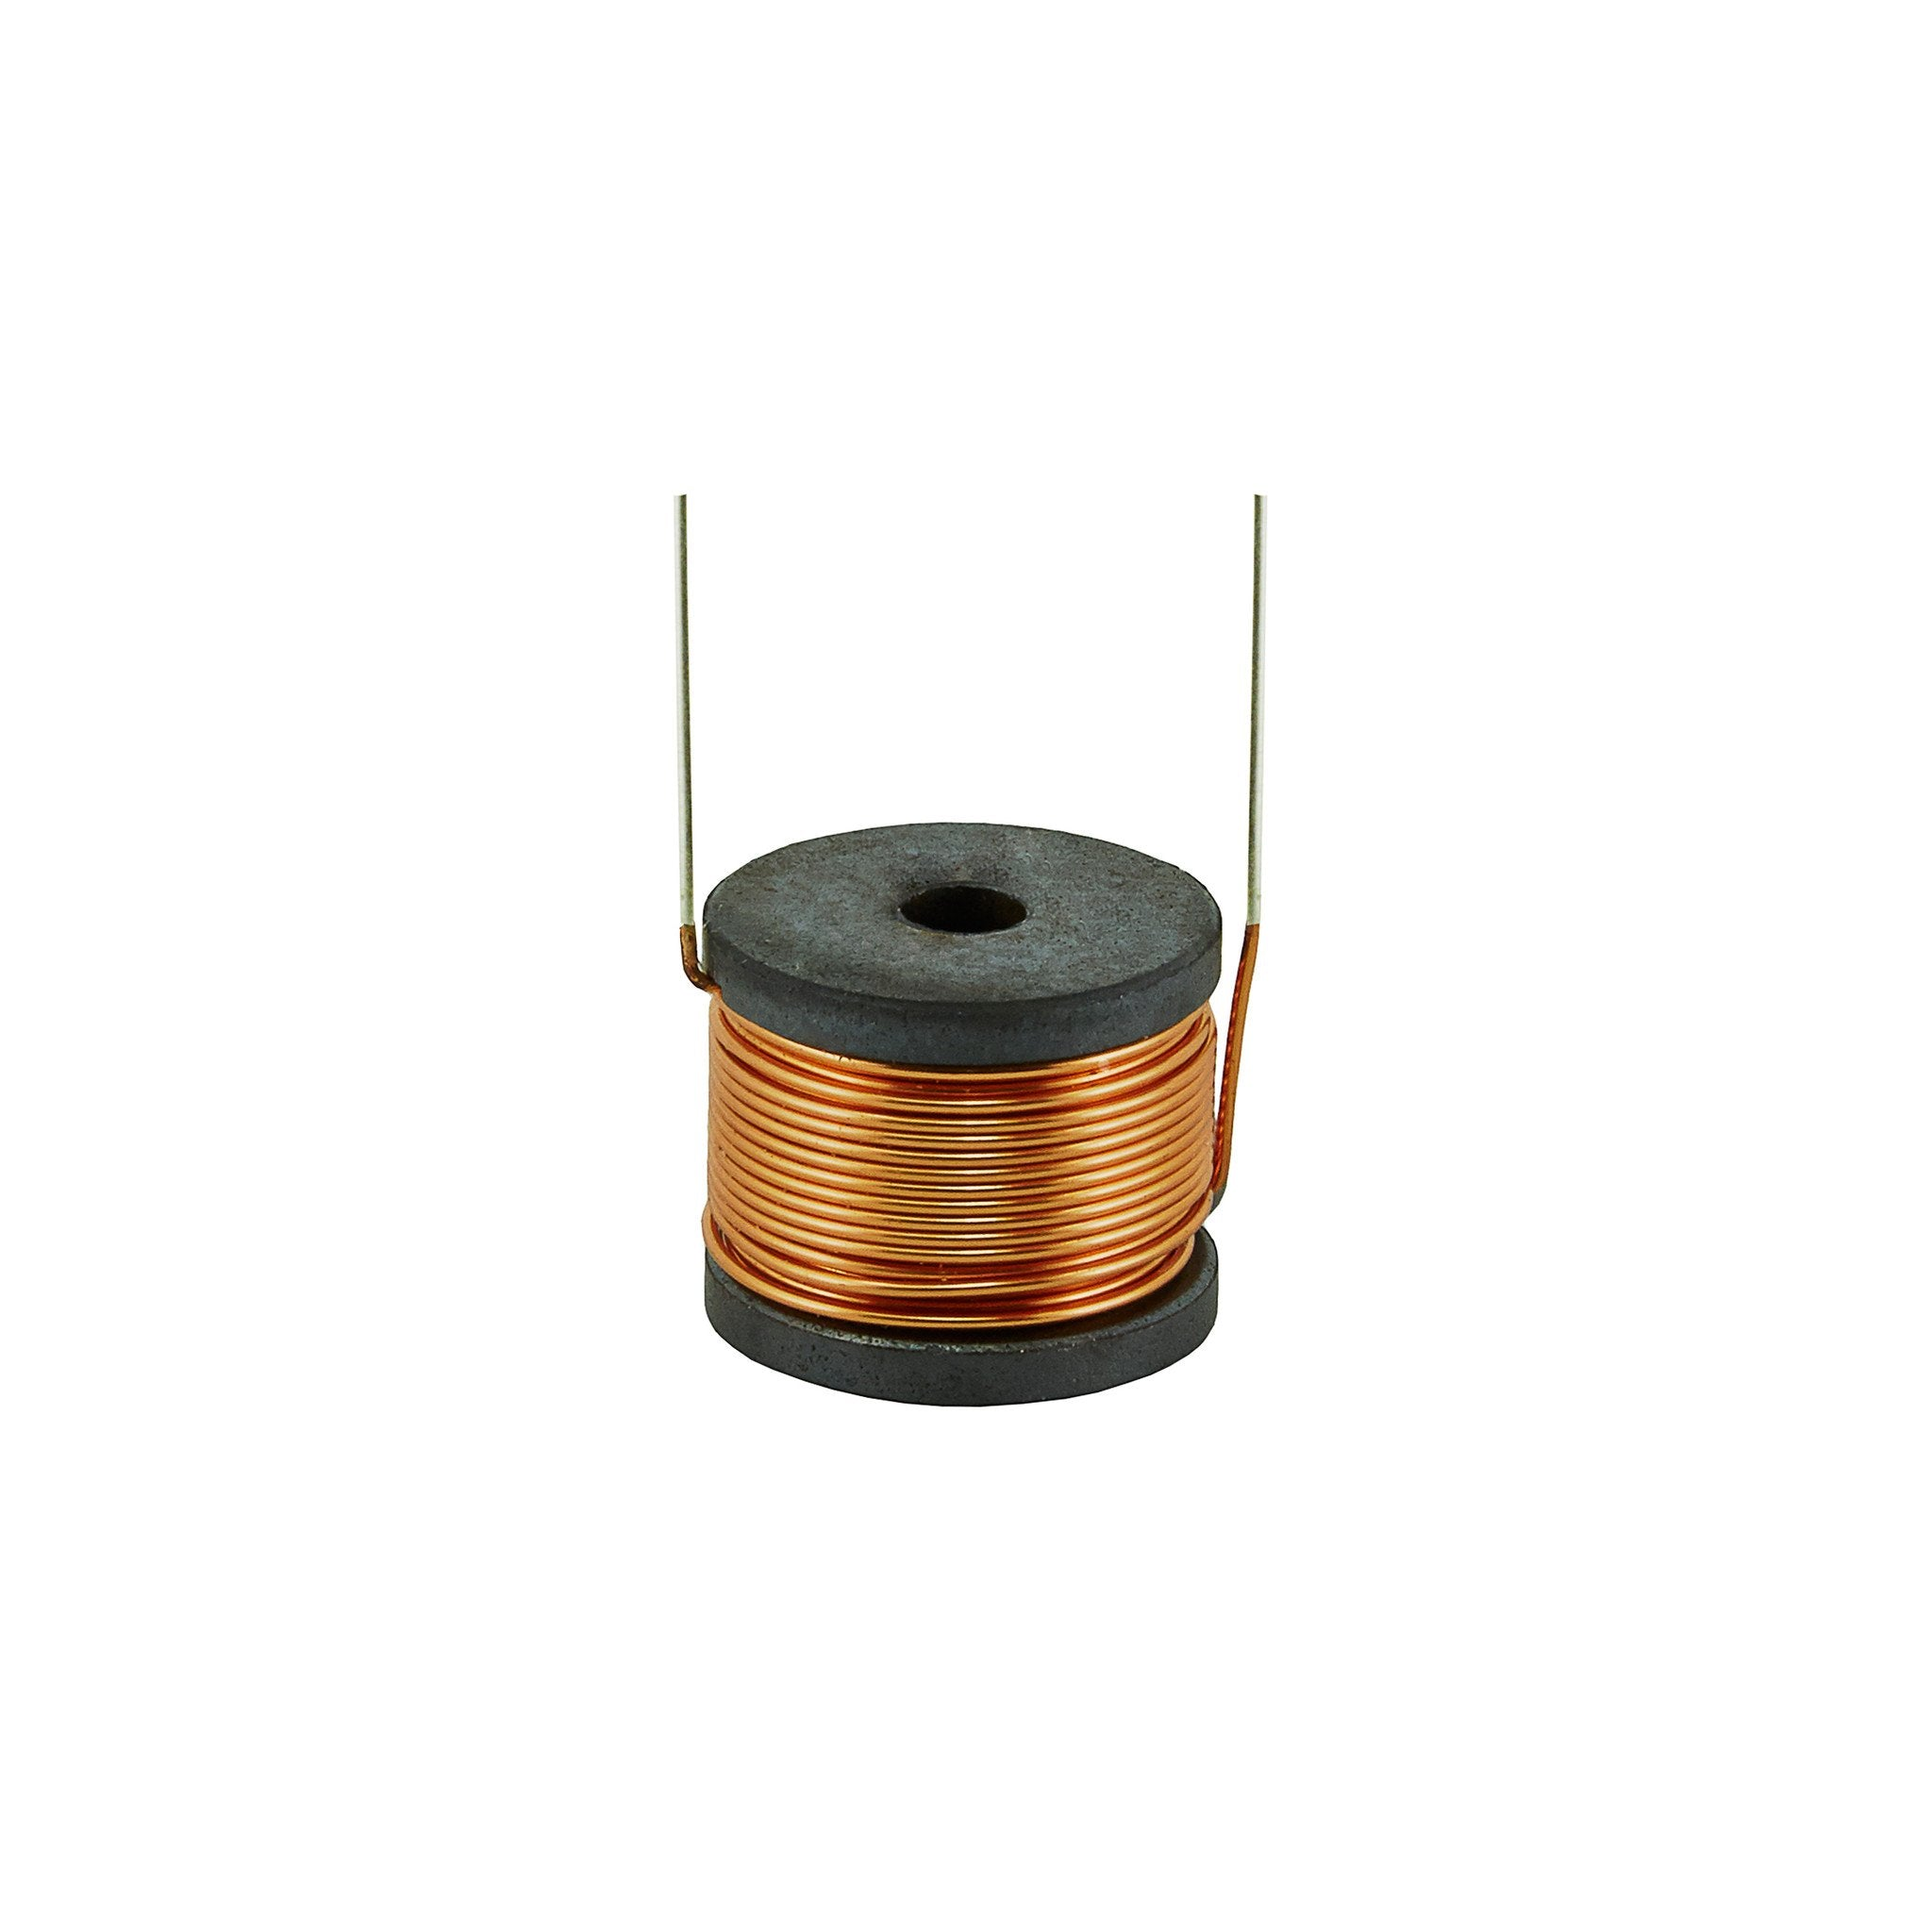 HiFi Crossover Inductor 1.0mH Iron Core - Willys-Hifi Ltd